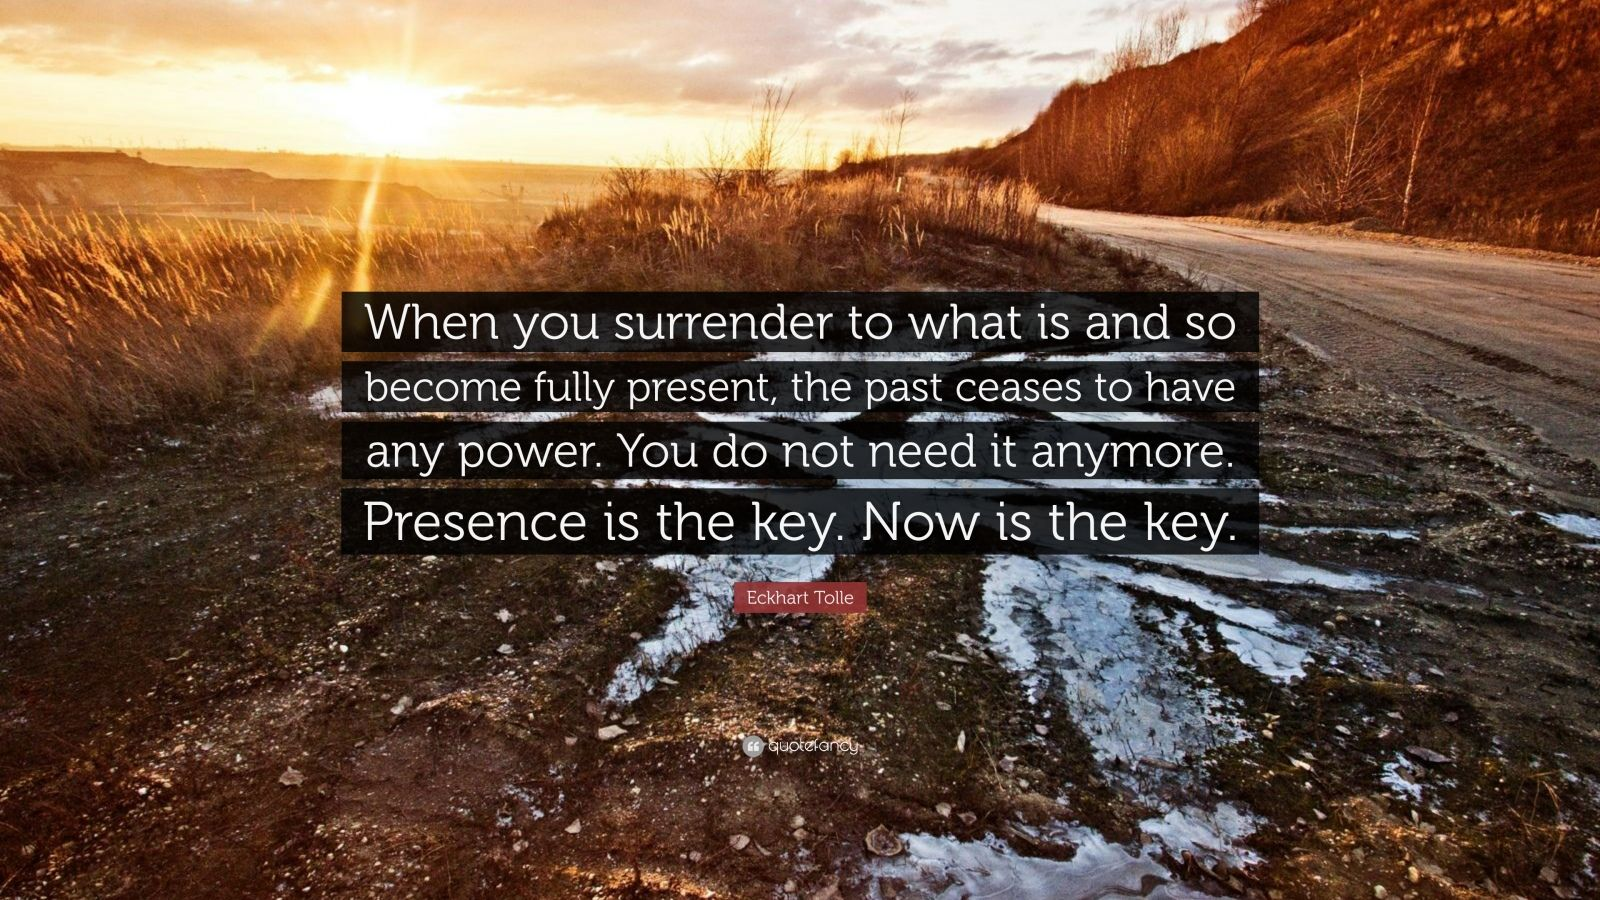 """Eckhart Tolle Quote: """"When you surrender to what is and so become fully present, the past ceases to have any power. You do not need it anymore. Presence is the key. Now is the key."""""""